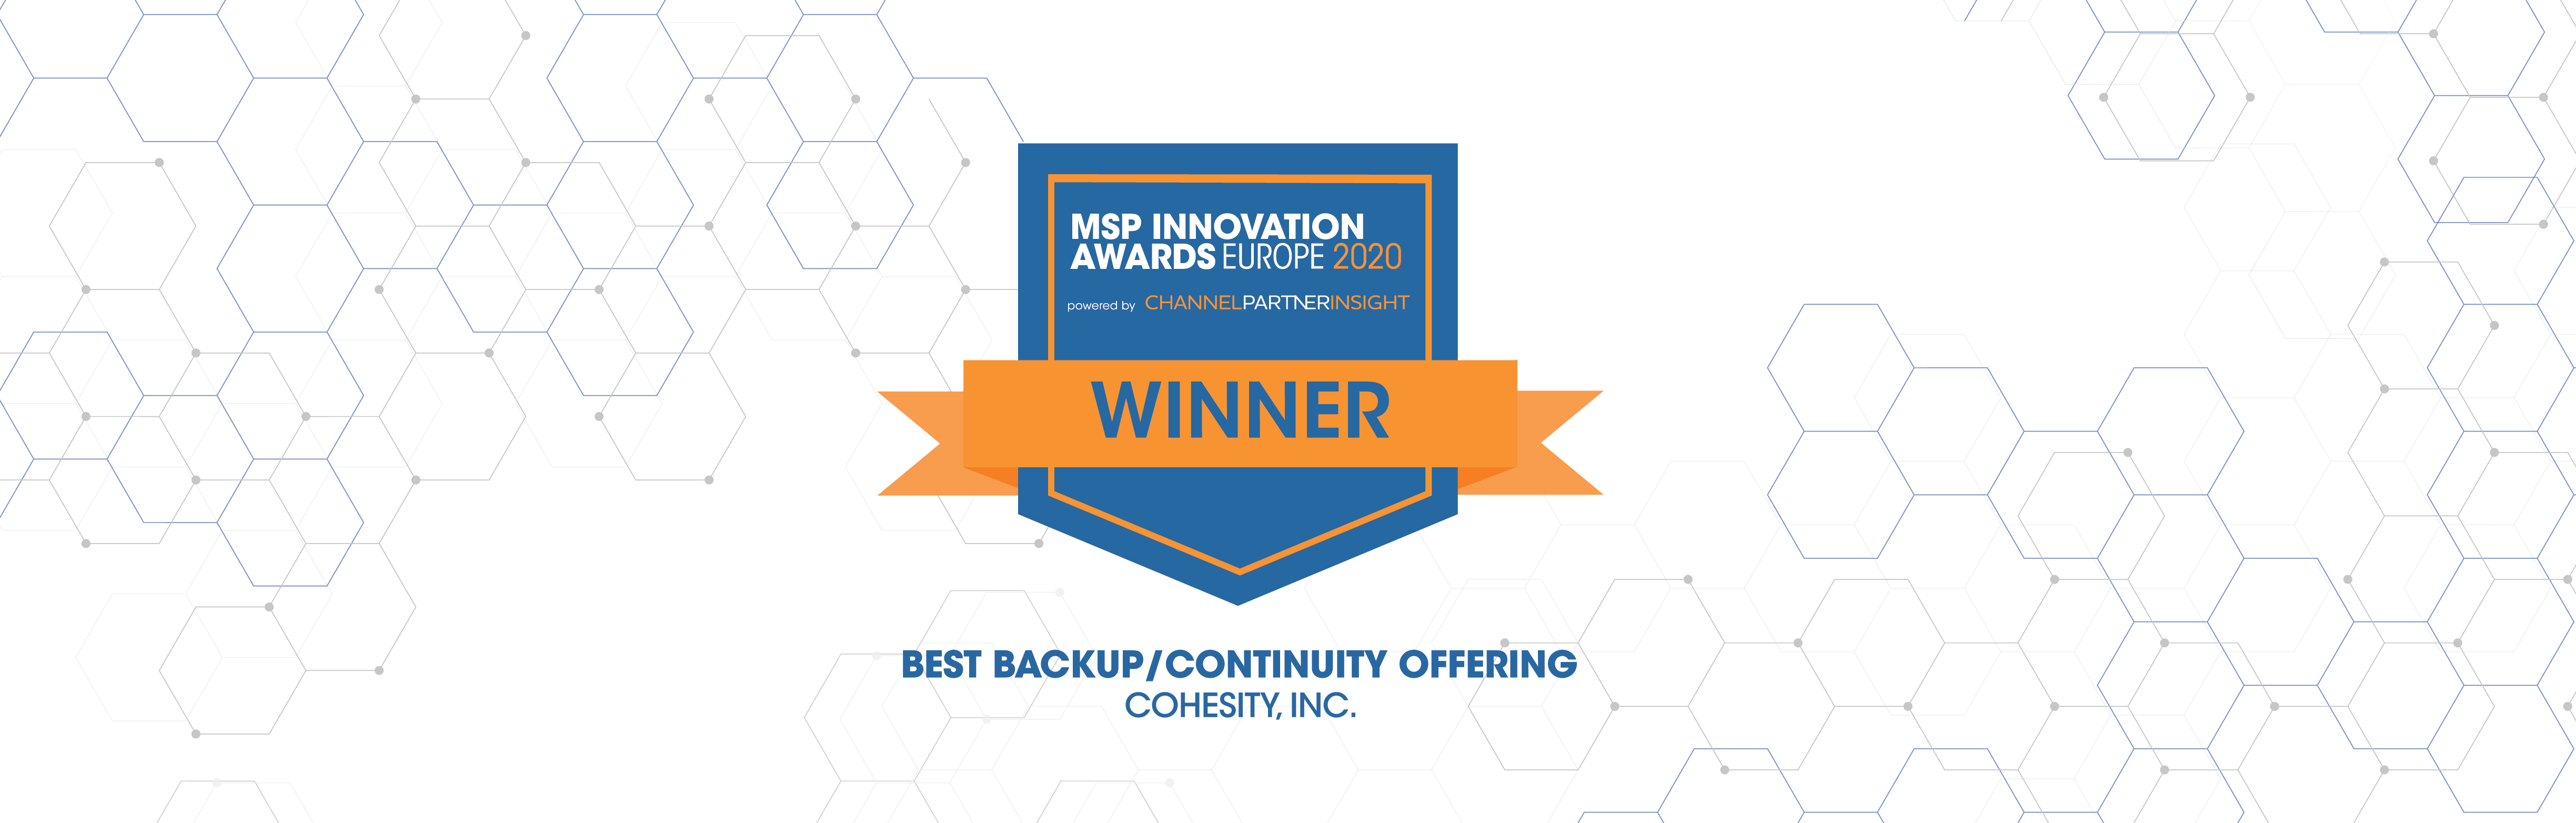 Cohesity Lands Coveted Backup and Continuity Win at the Channel Partner Insight MSP Innovation Awards